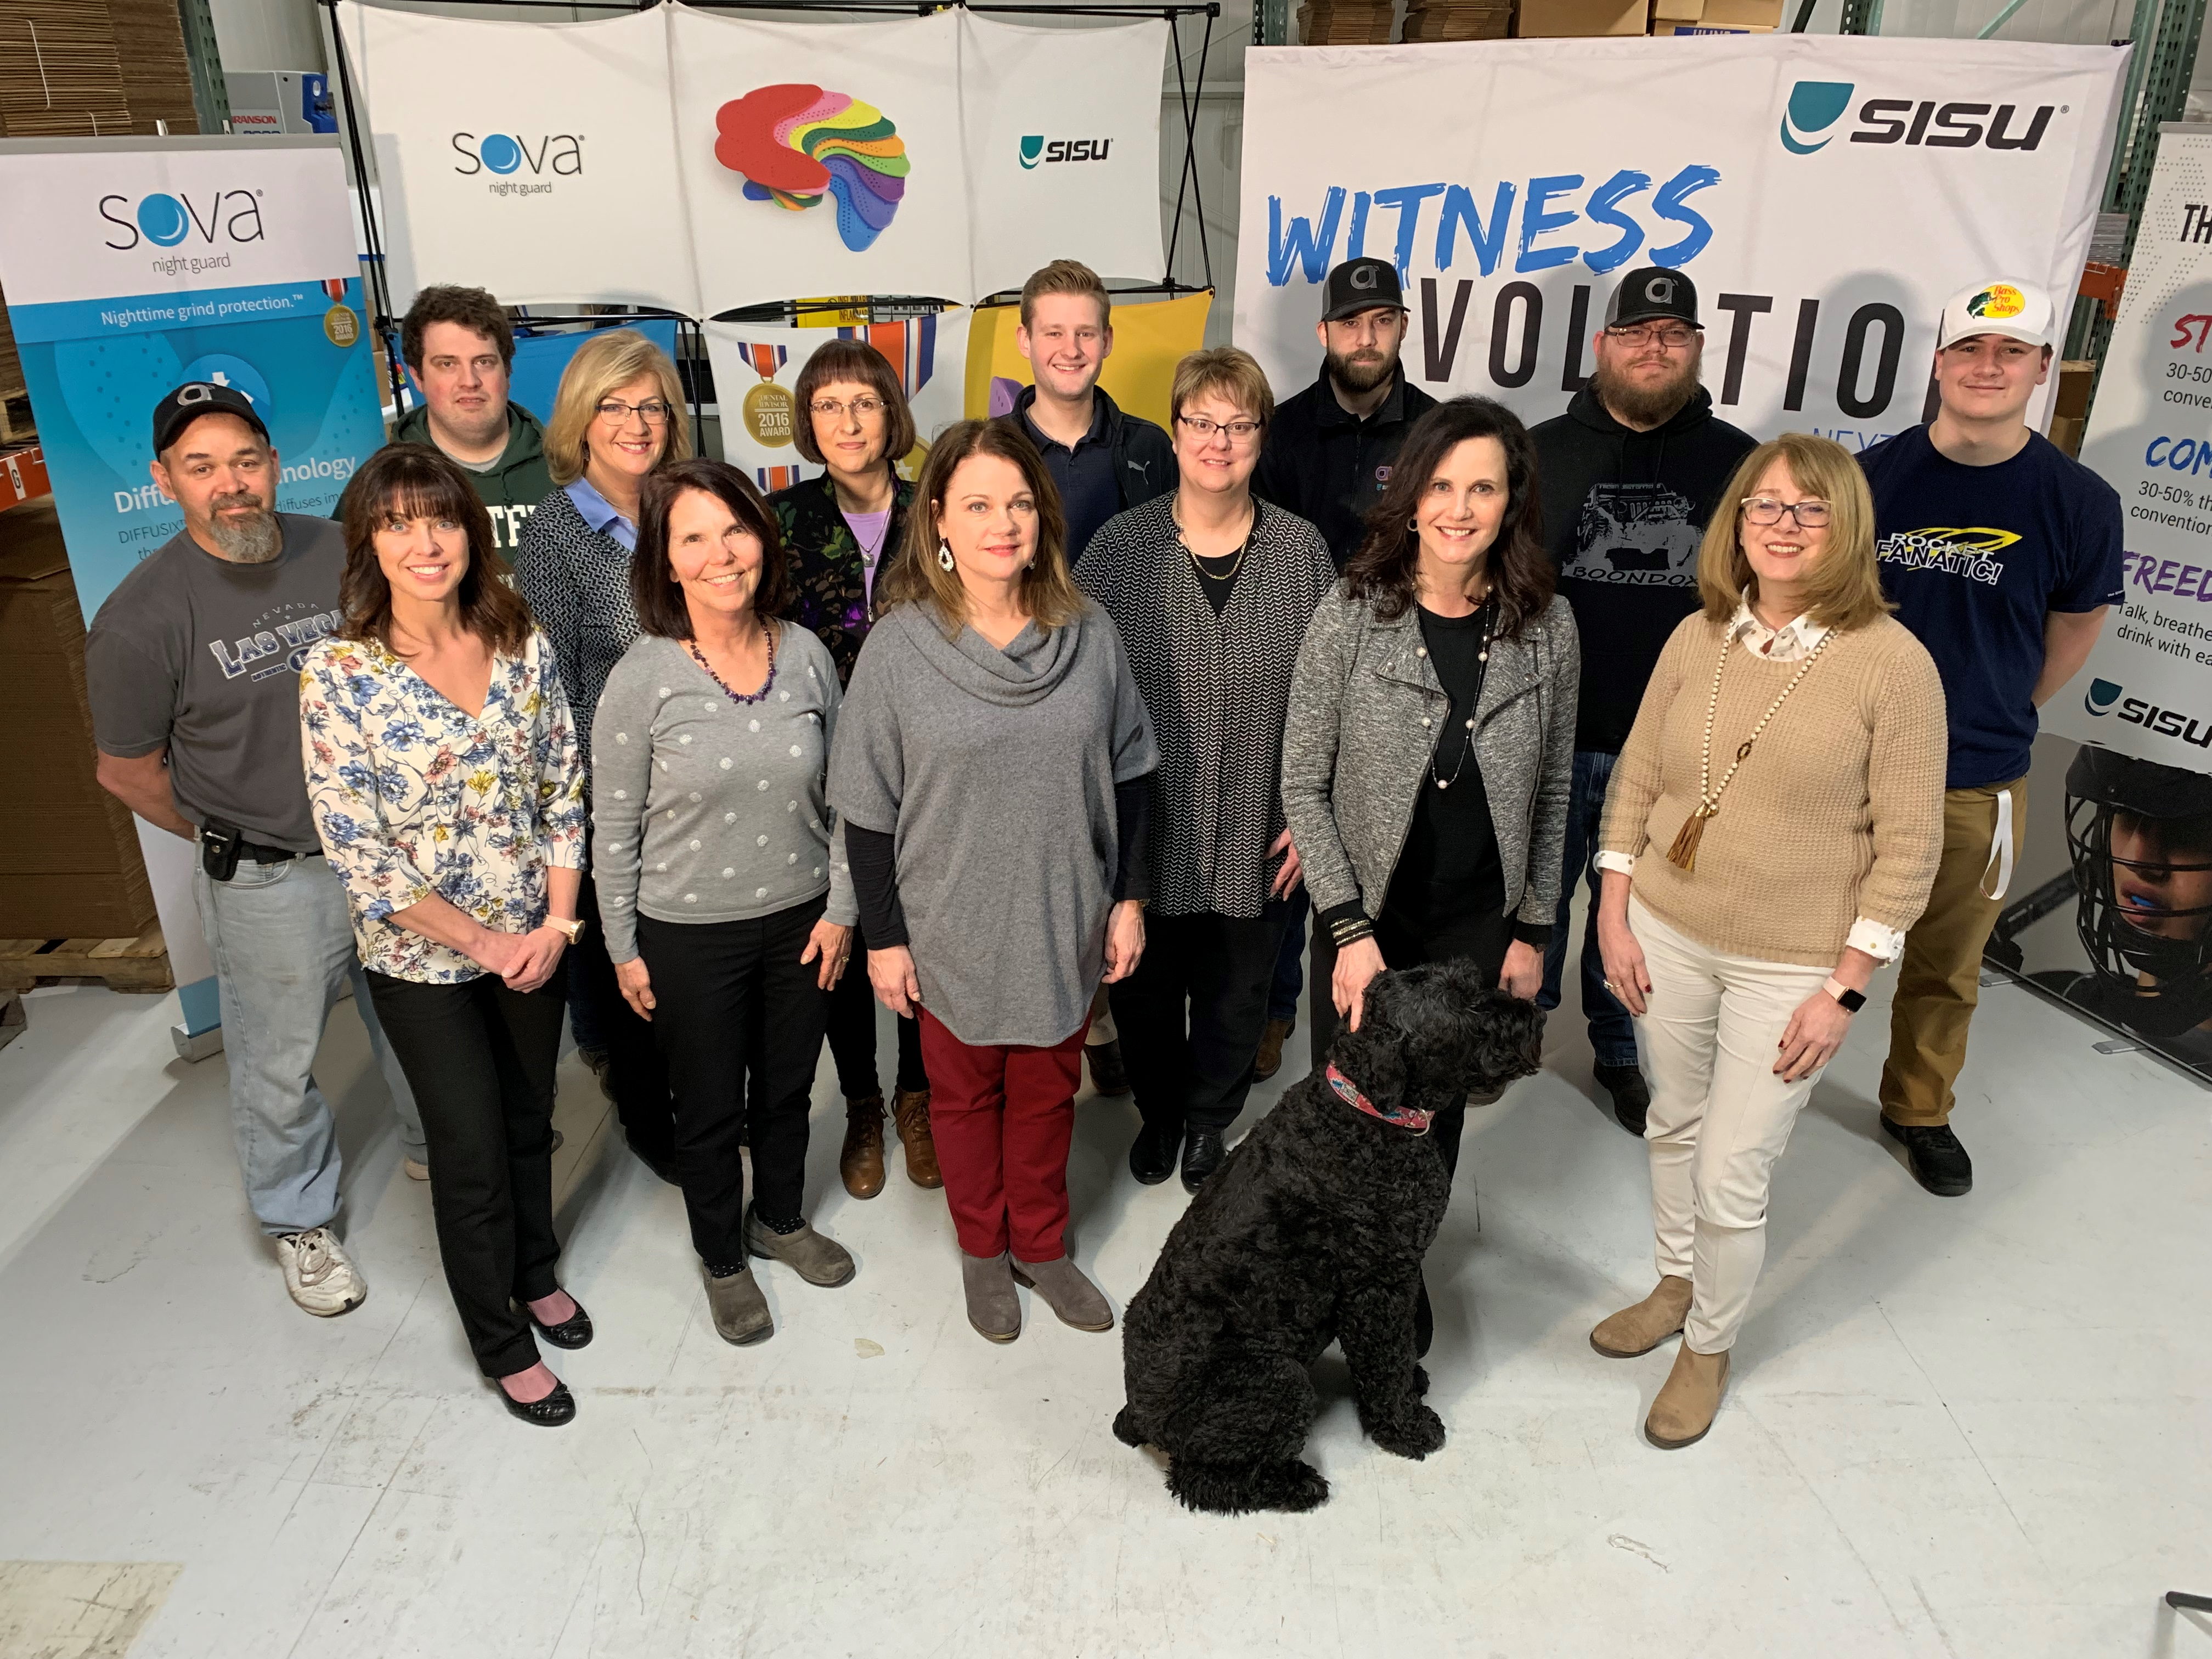 """Akervall-Team-2019.jpg ¬– """"Our company success is the result of the cumulative work of our team. We're not only preserving dental health around the world, but also creating jobs here in Michigan,"""" said Sassa Akervall, CEO, first row, second from right."""